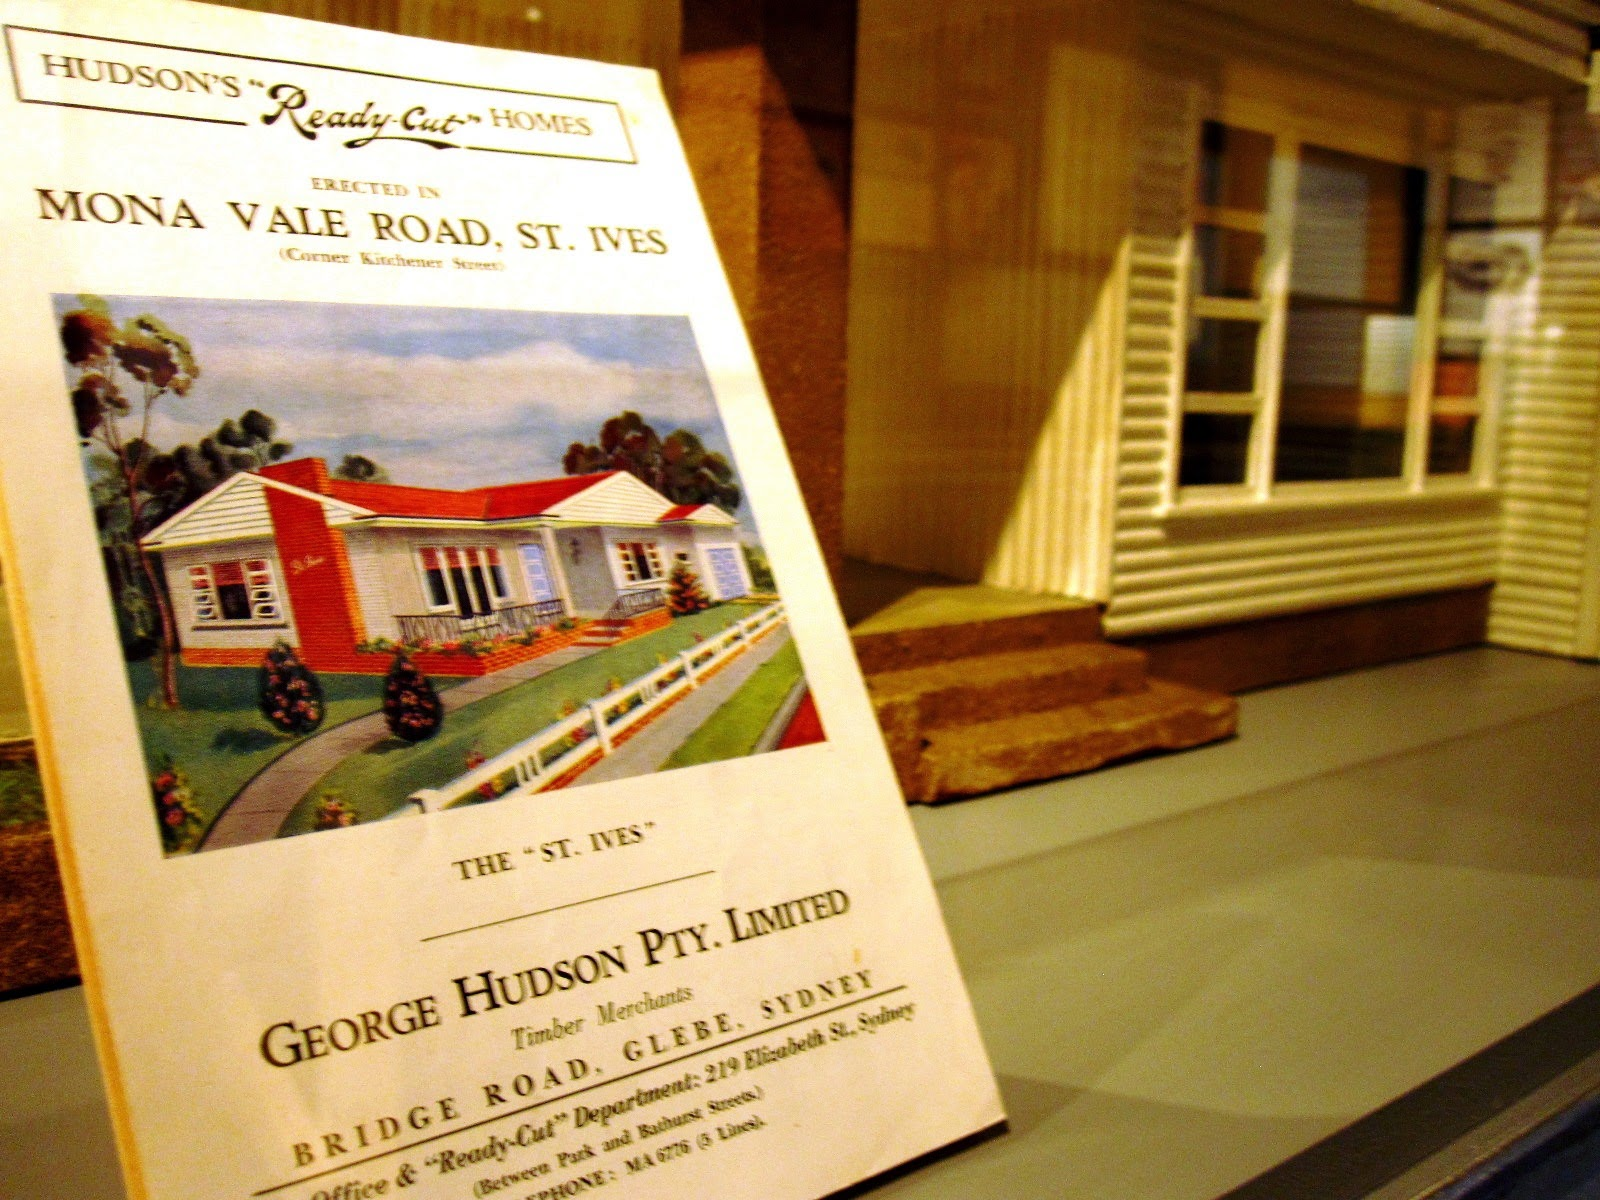 Original pamphlet for the house depicted by the  model 'St Ives' house in the exhibition 'Dream Home Small Home'